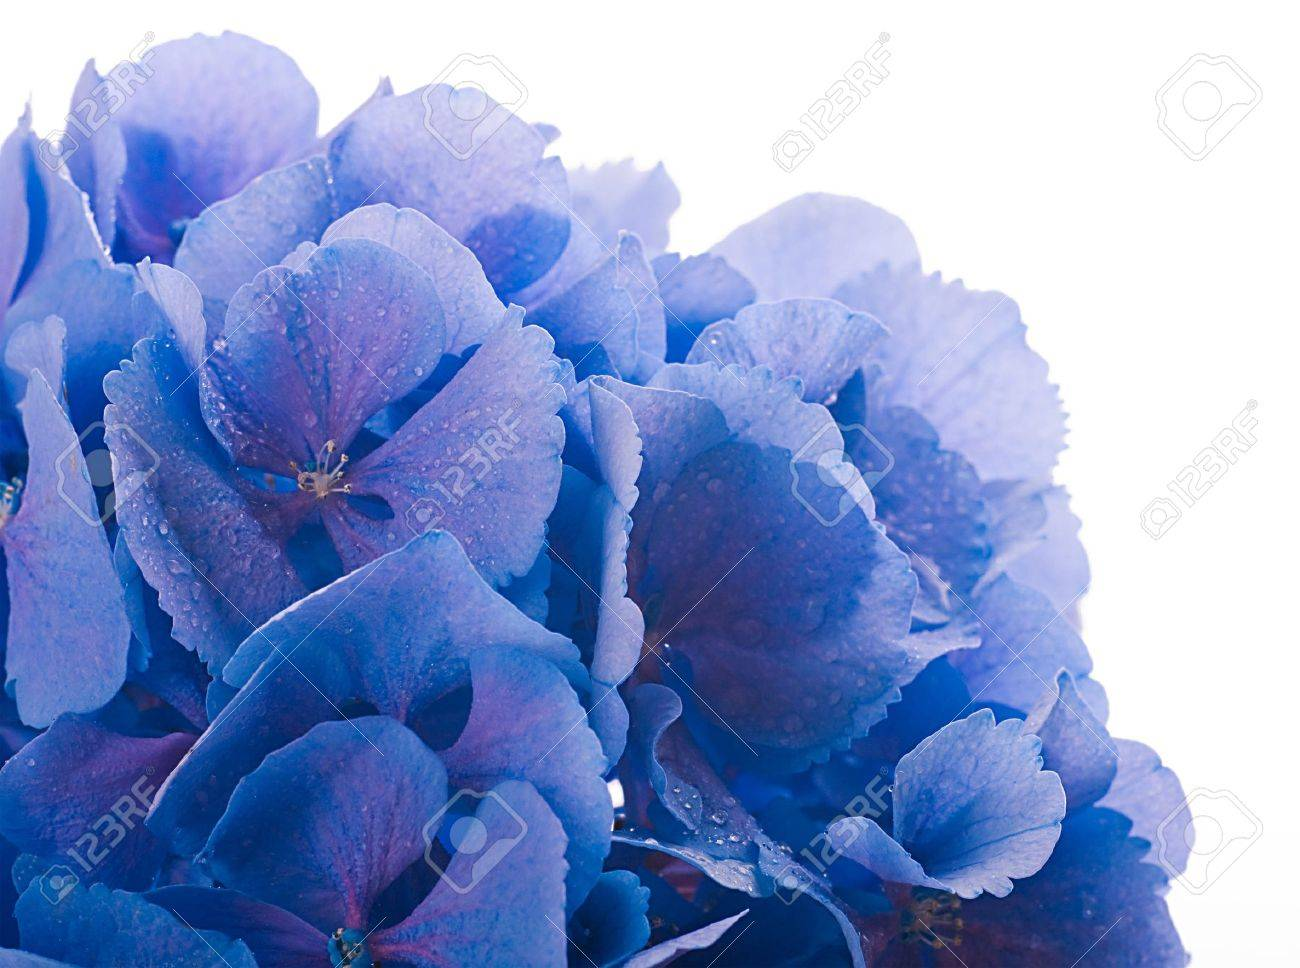 Flowers in a bouquet blue hydrangeas and white flowers stock photo flowers in a bouquet blue hydrangeas and white flowers stock photo 15553284 mightylinksfo